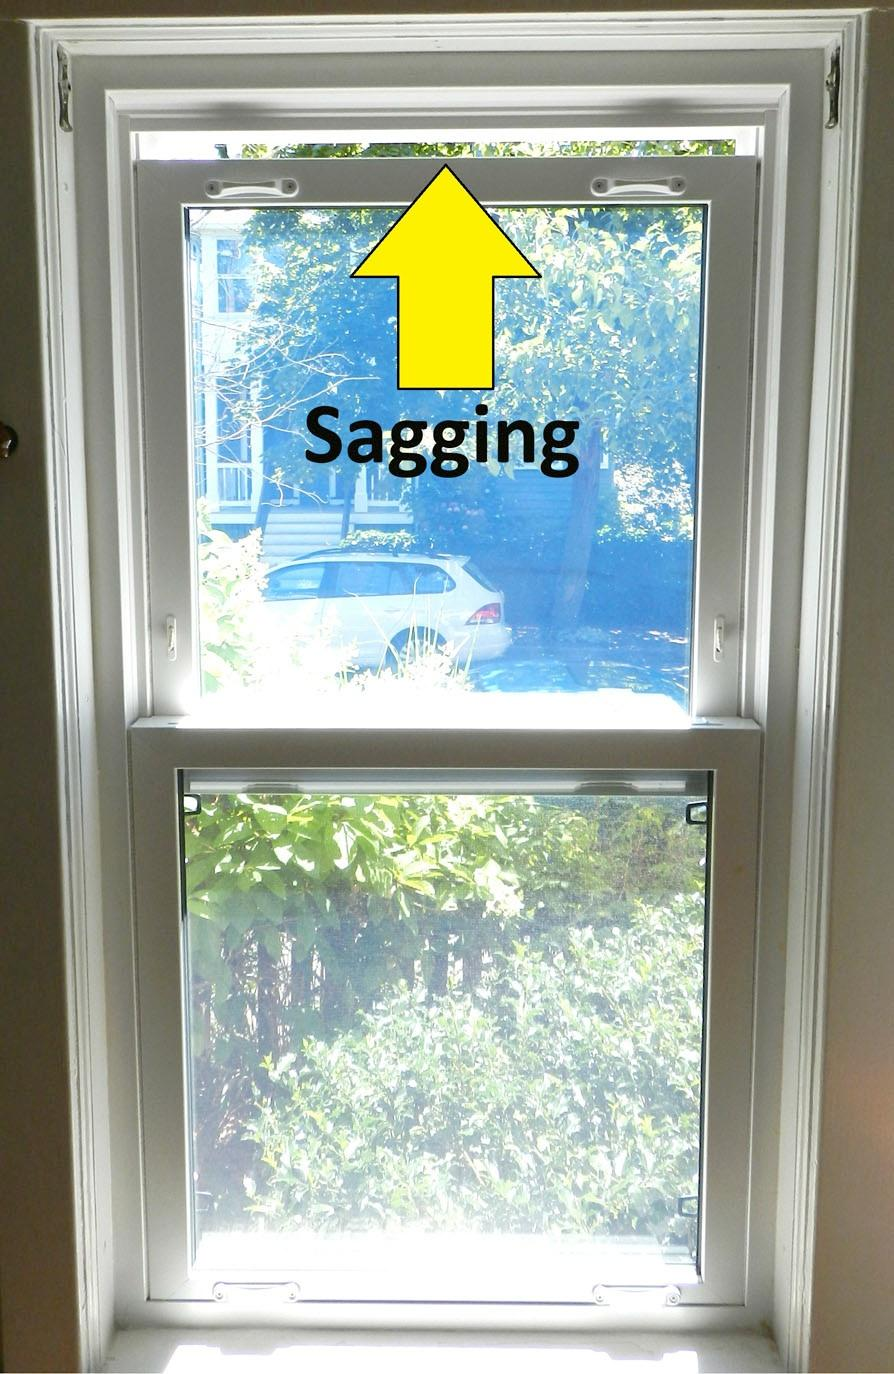 section 31 sagging upper sashes Okay, so you or someone before you got replacement double-sash windows, probably 10 to 15 years ago.